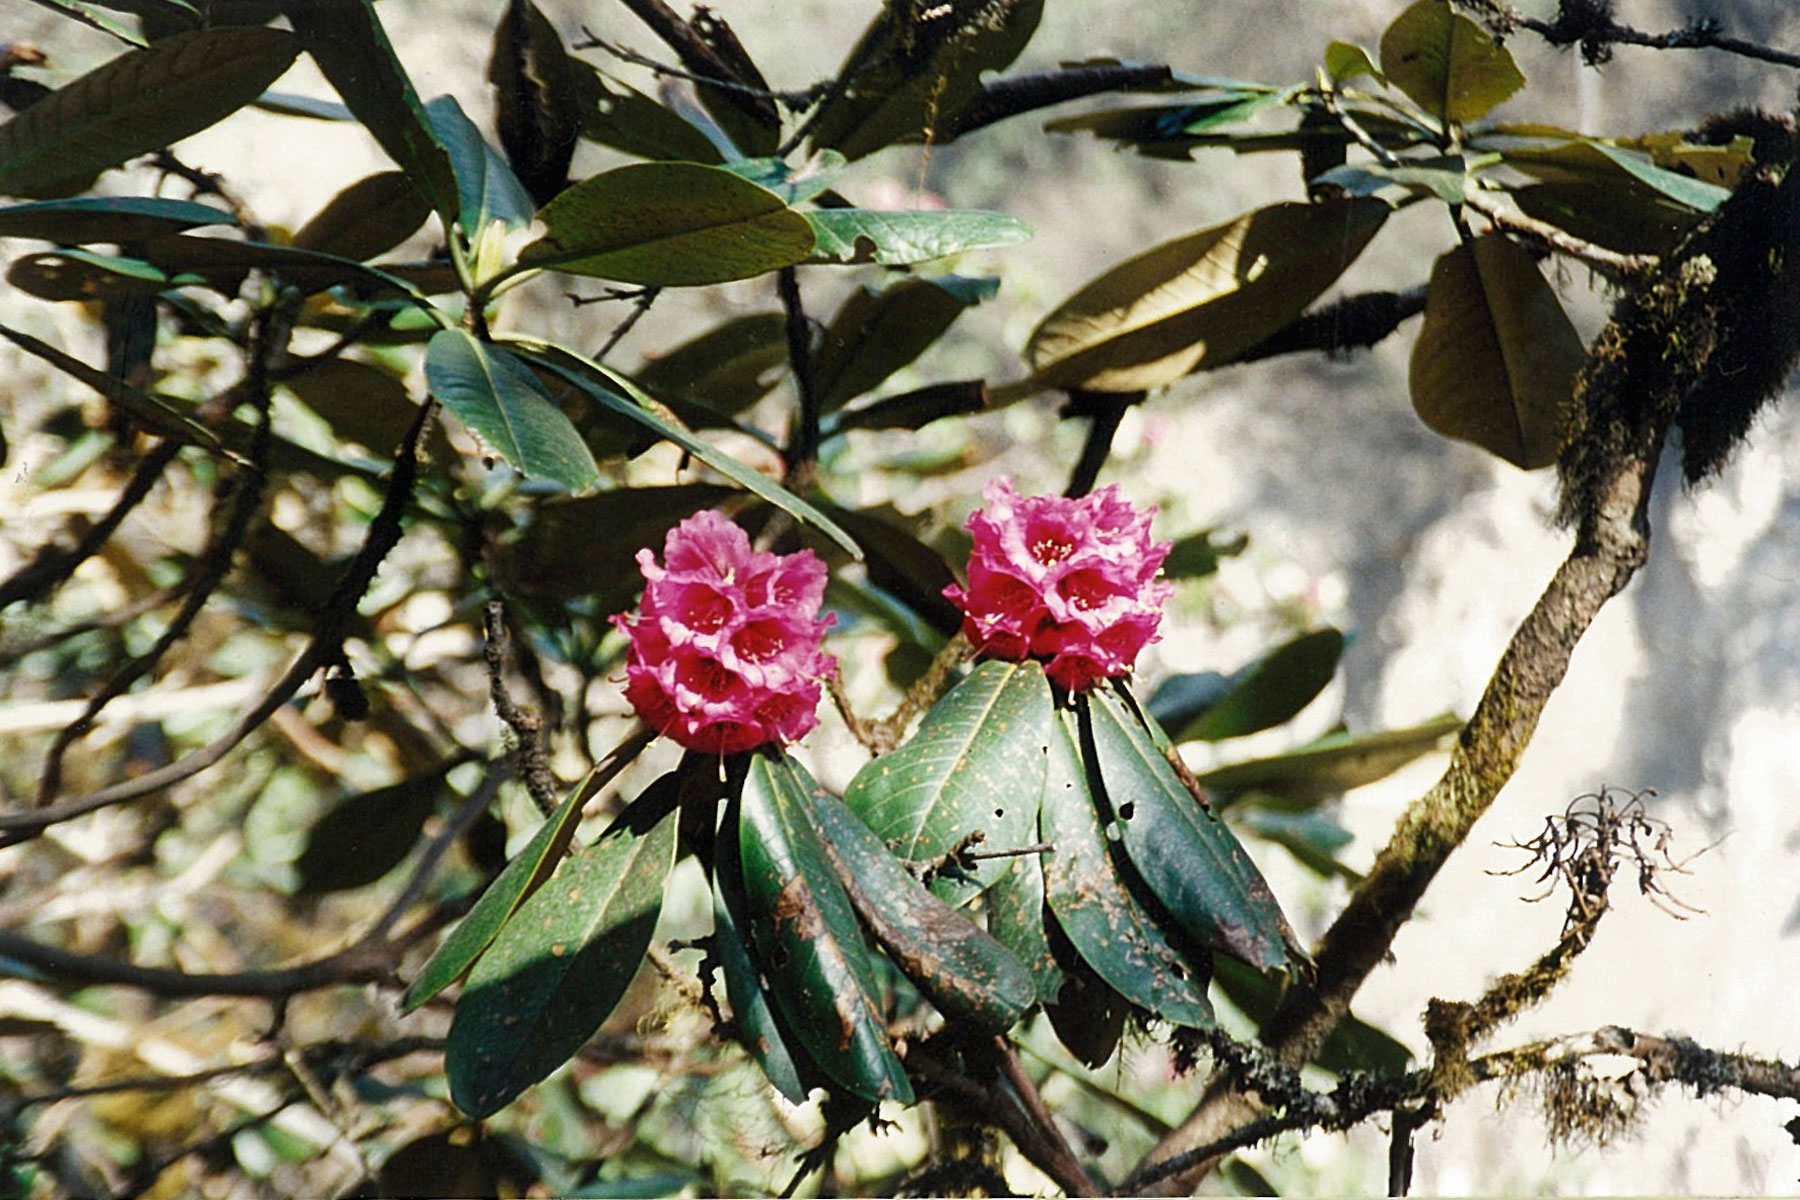 Rhododendron Bloom 3 Three Passes Trek Everest Base Camp EBC Trek Nepal Trekking Hike Hiking Khumbu Valley Himalayas